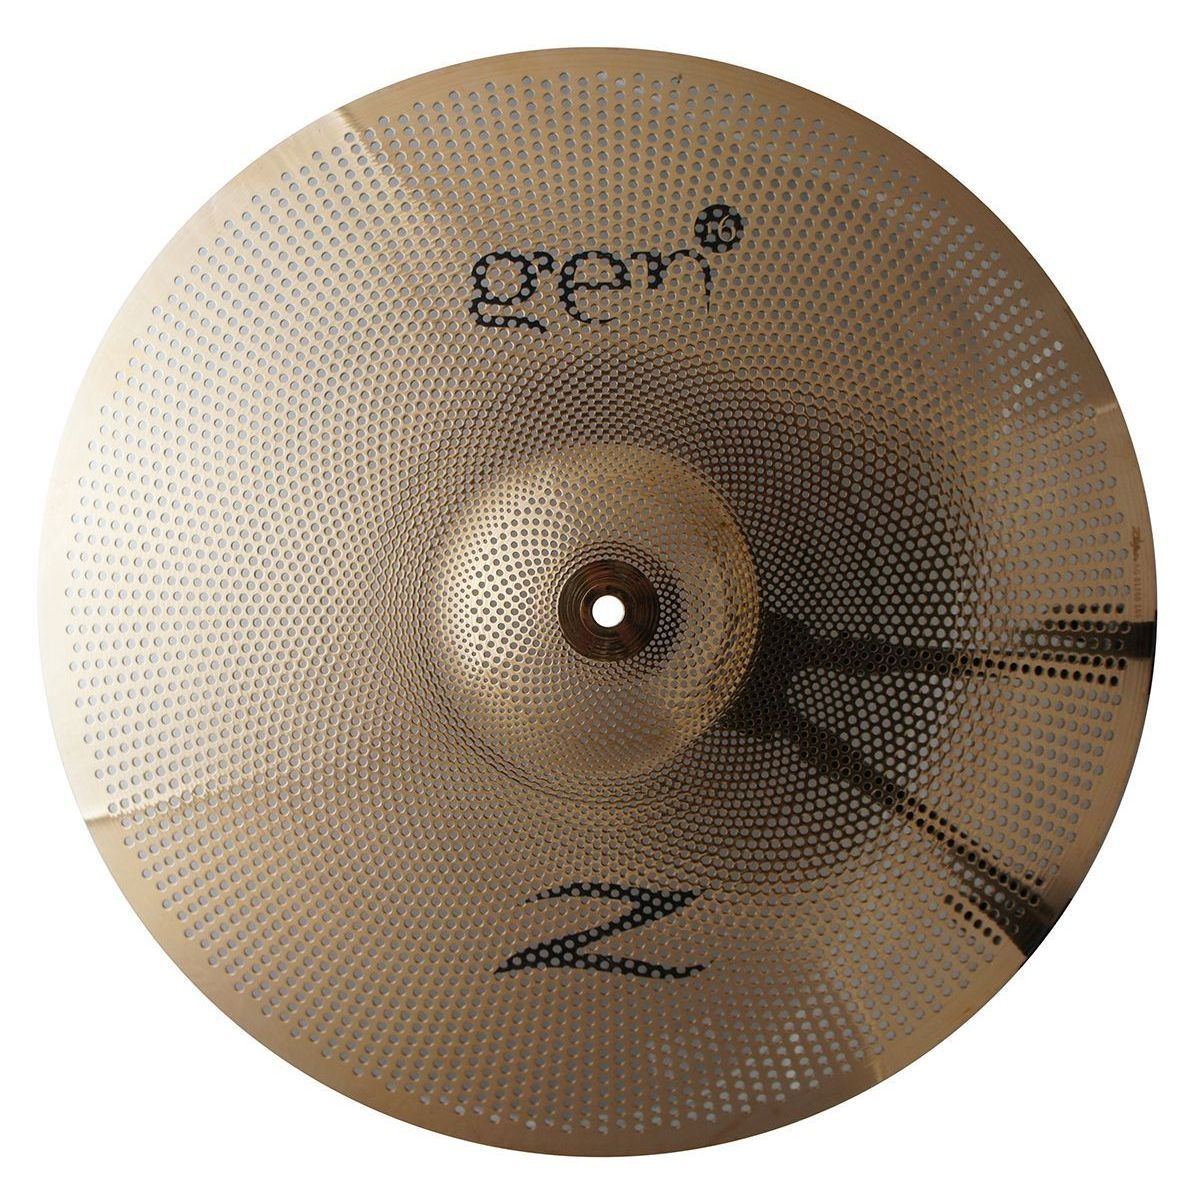 zildjian g1620r gen16 20 inch acoustic bronze special effect ride cymbal used 642388311363 ebay. Black Bedroom Furniture Sets. Home Design Ideas